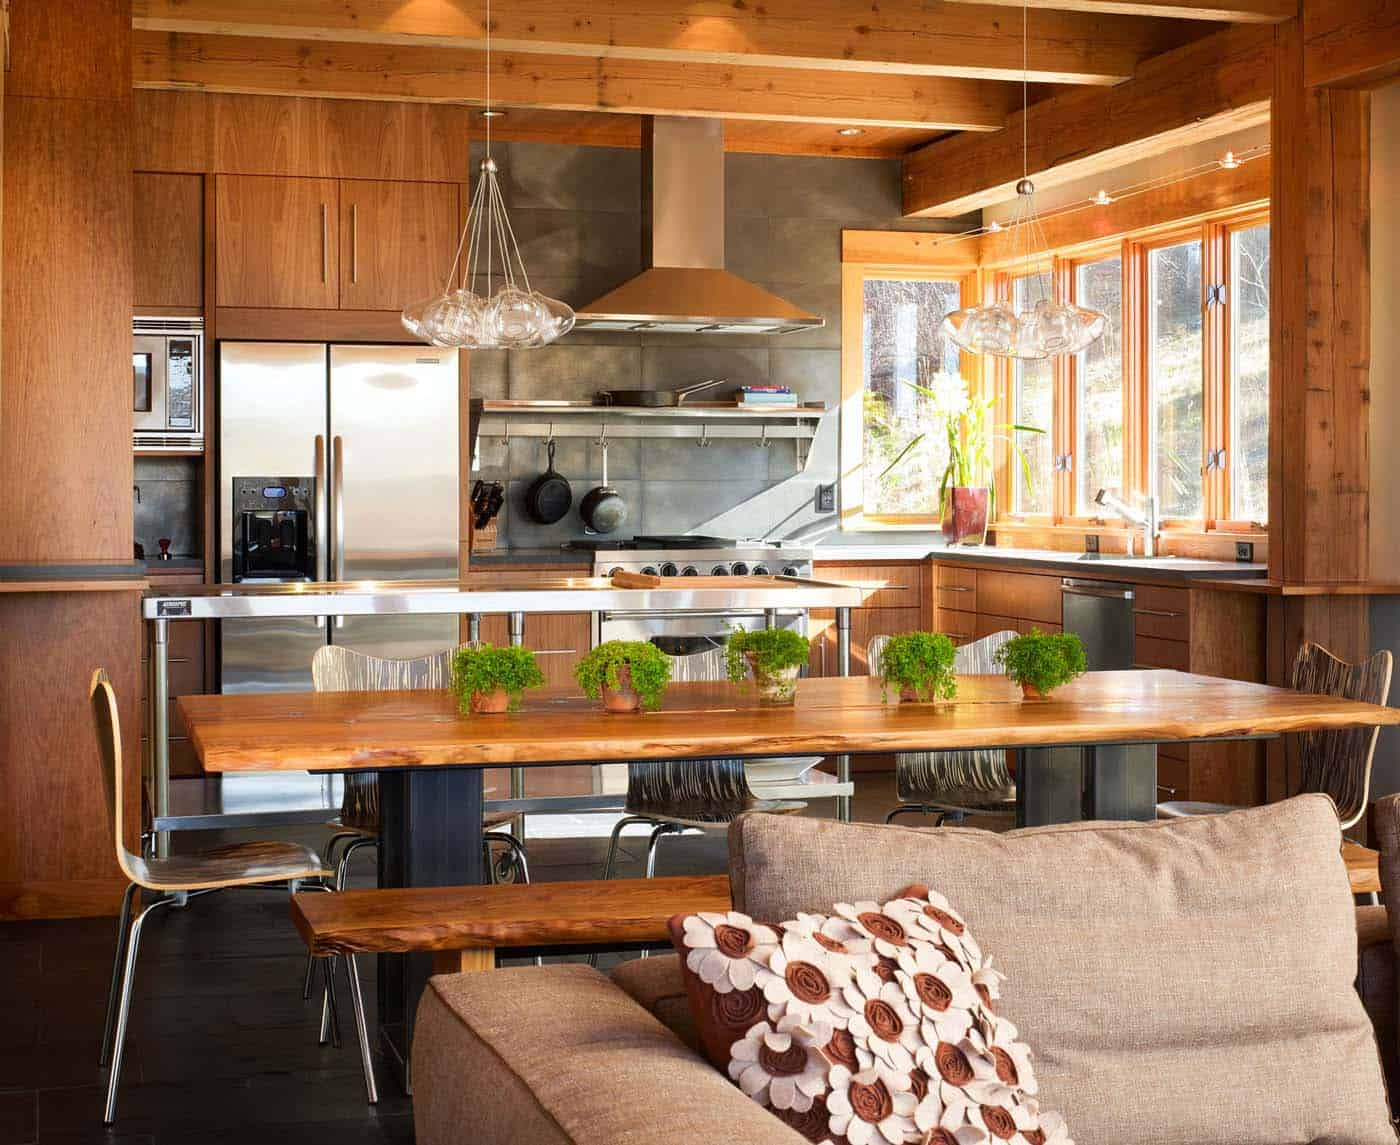 Contemporary Eco-Friendly Home-Robert Hawkins Architects-07-1 Kindesign